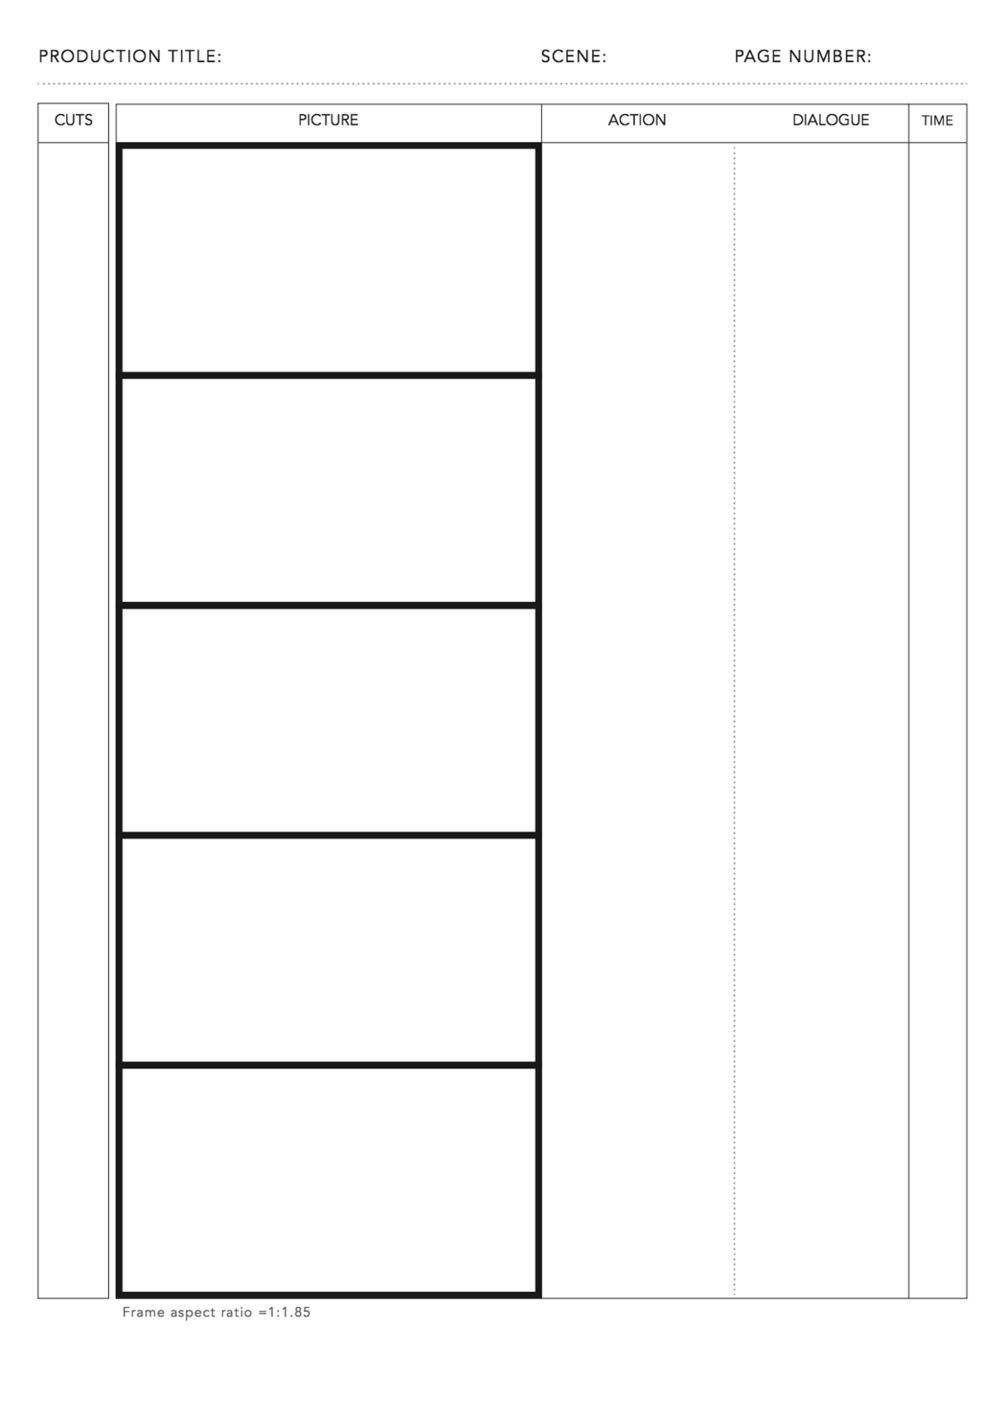 Free Pdf Anime Storyboard Template For 1851 Aspect Ratio On A4